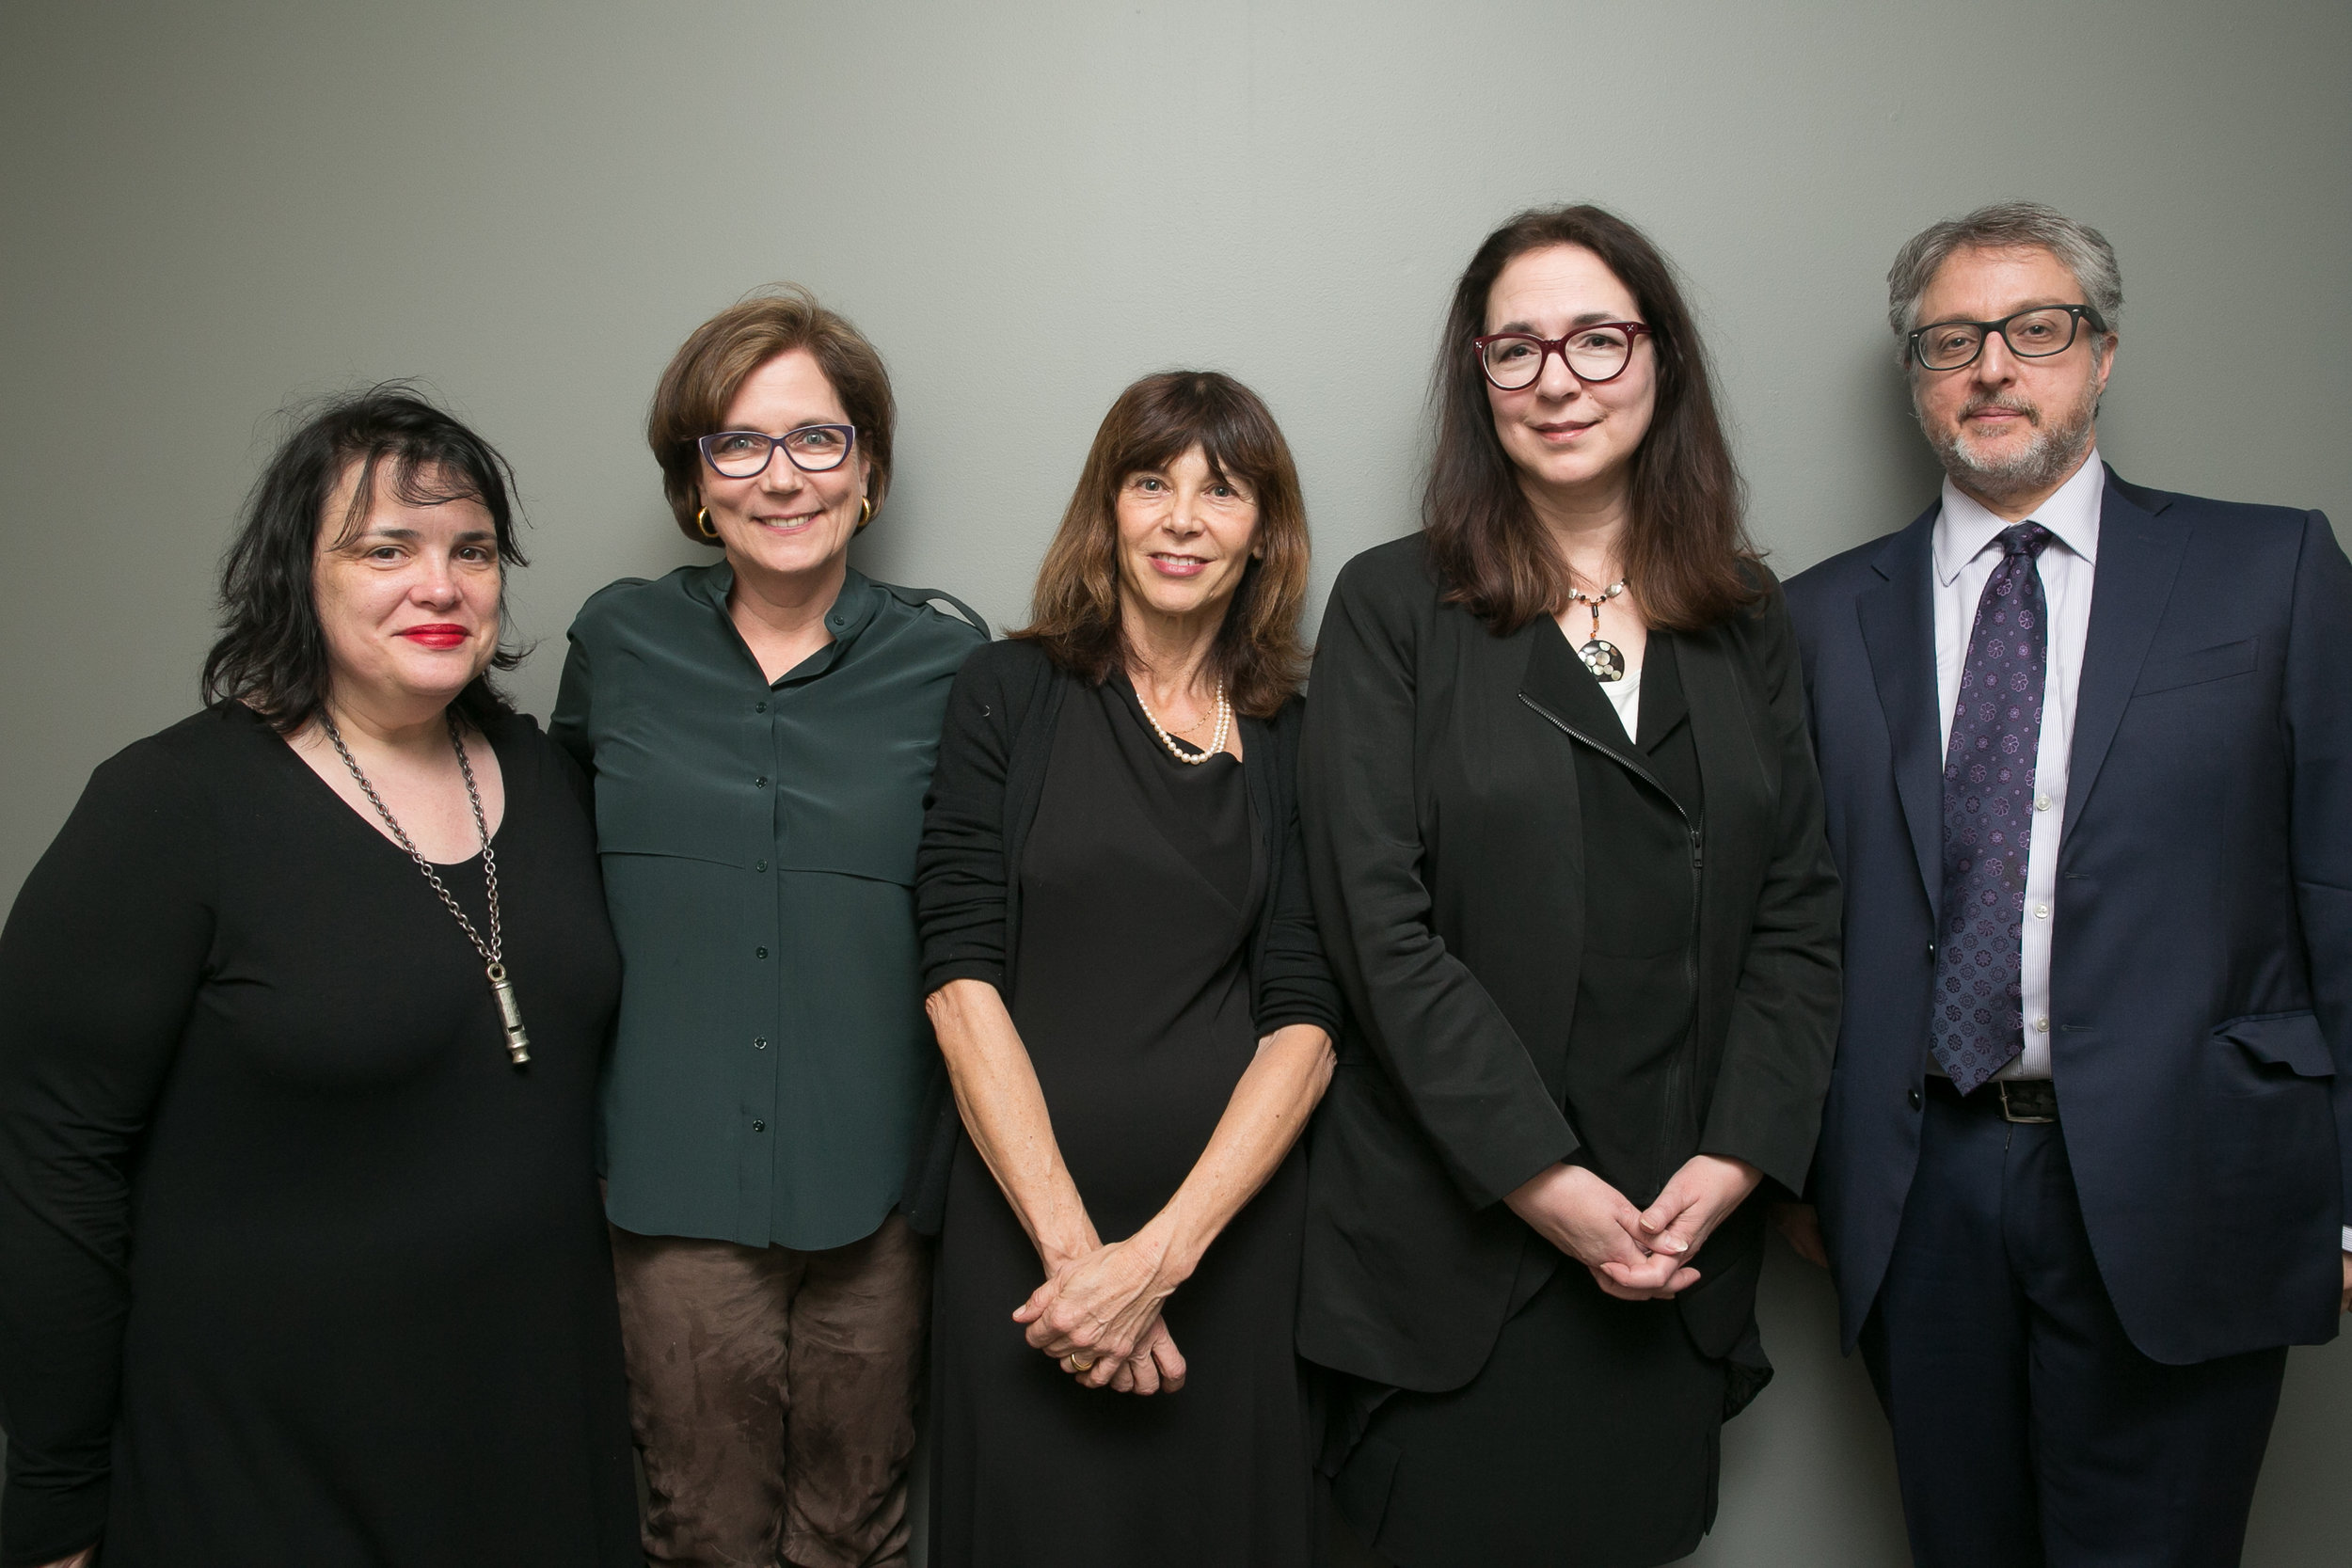 Elizabeth McCracken, Julie Lindsey, Francesa Marciano, Lorrie Moore, and Larry Dark. ( Event photos by Beowulf Sheehan.)